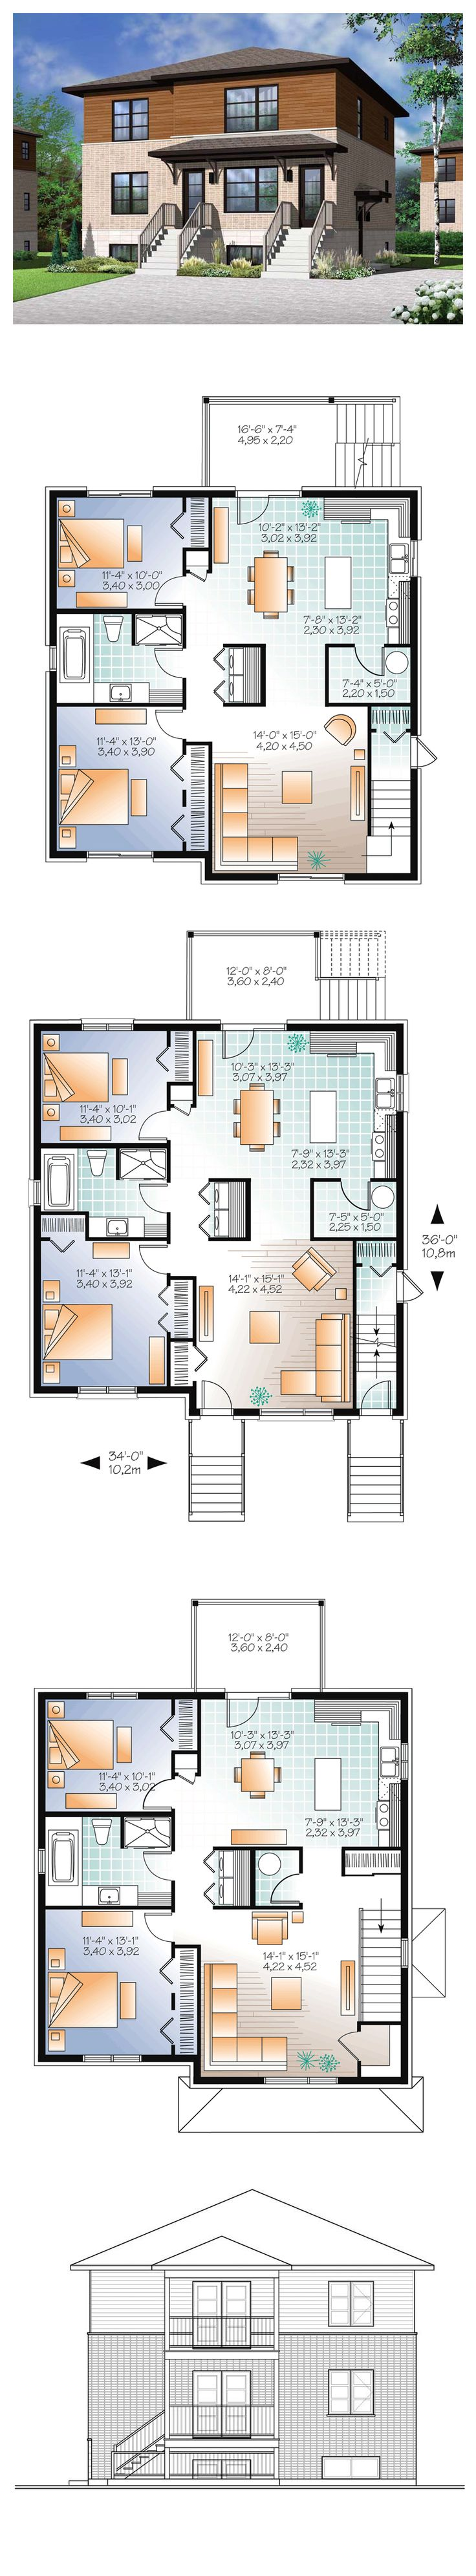 1000 images about duplex apartment plans on for 4 unit multi family house plans